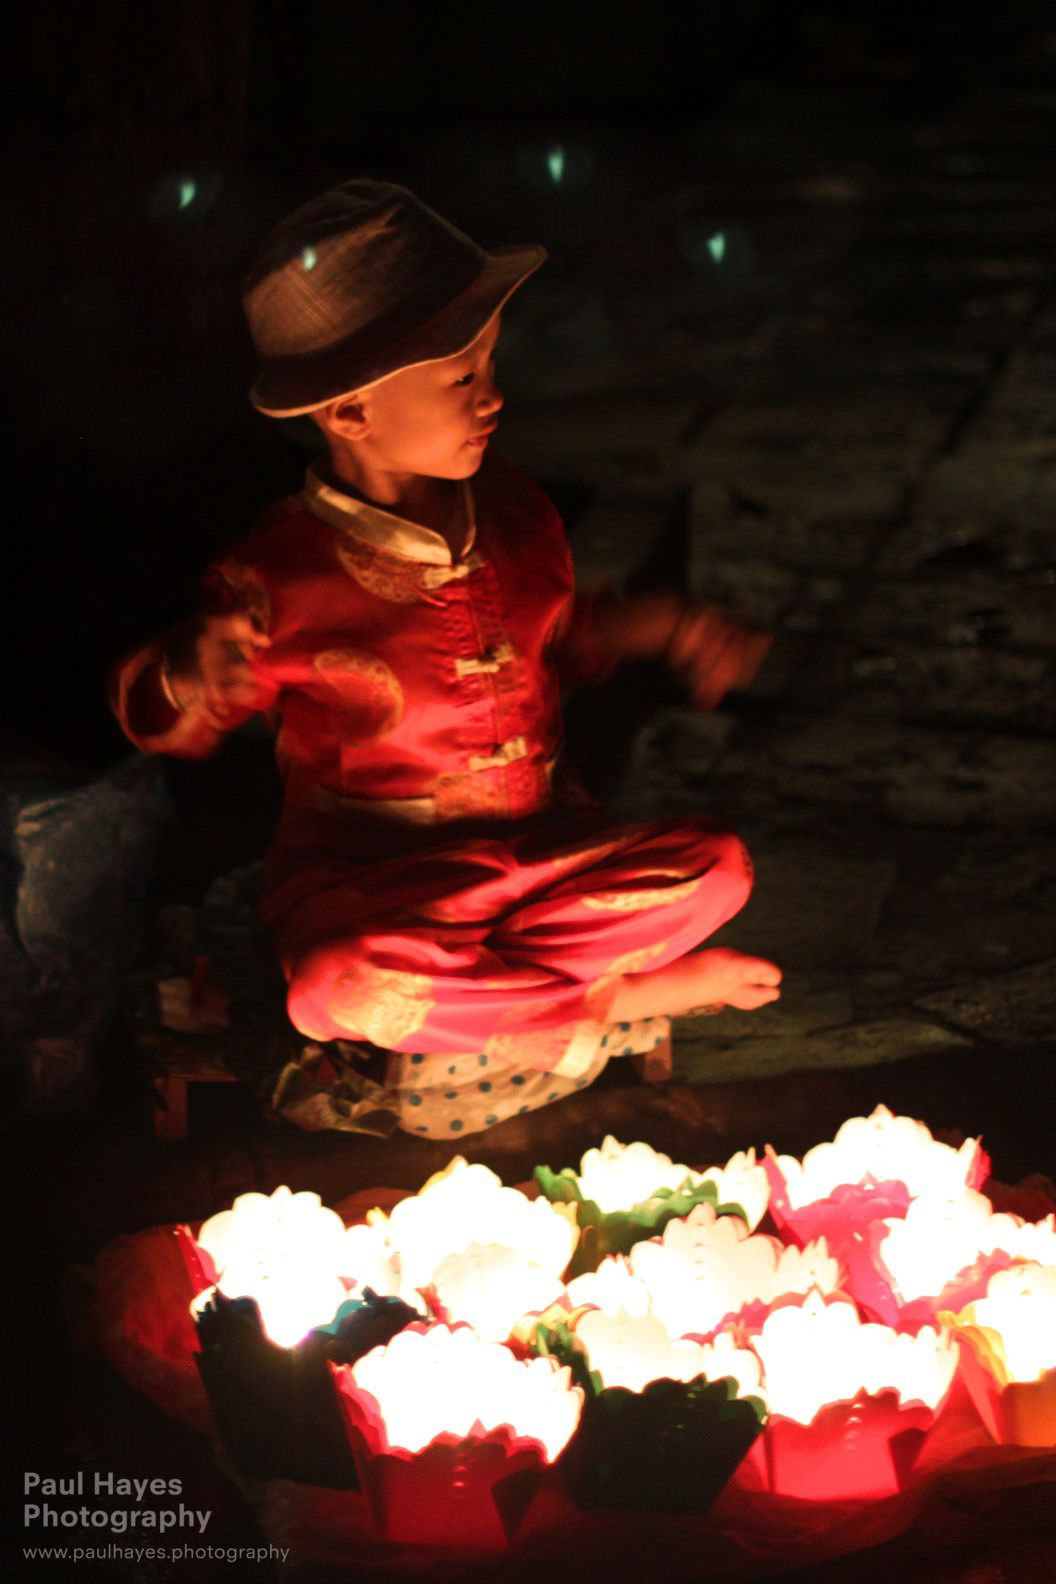 A child selling lanterns, sitting with the faeries